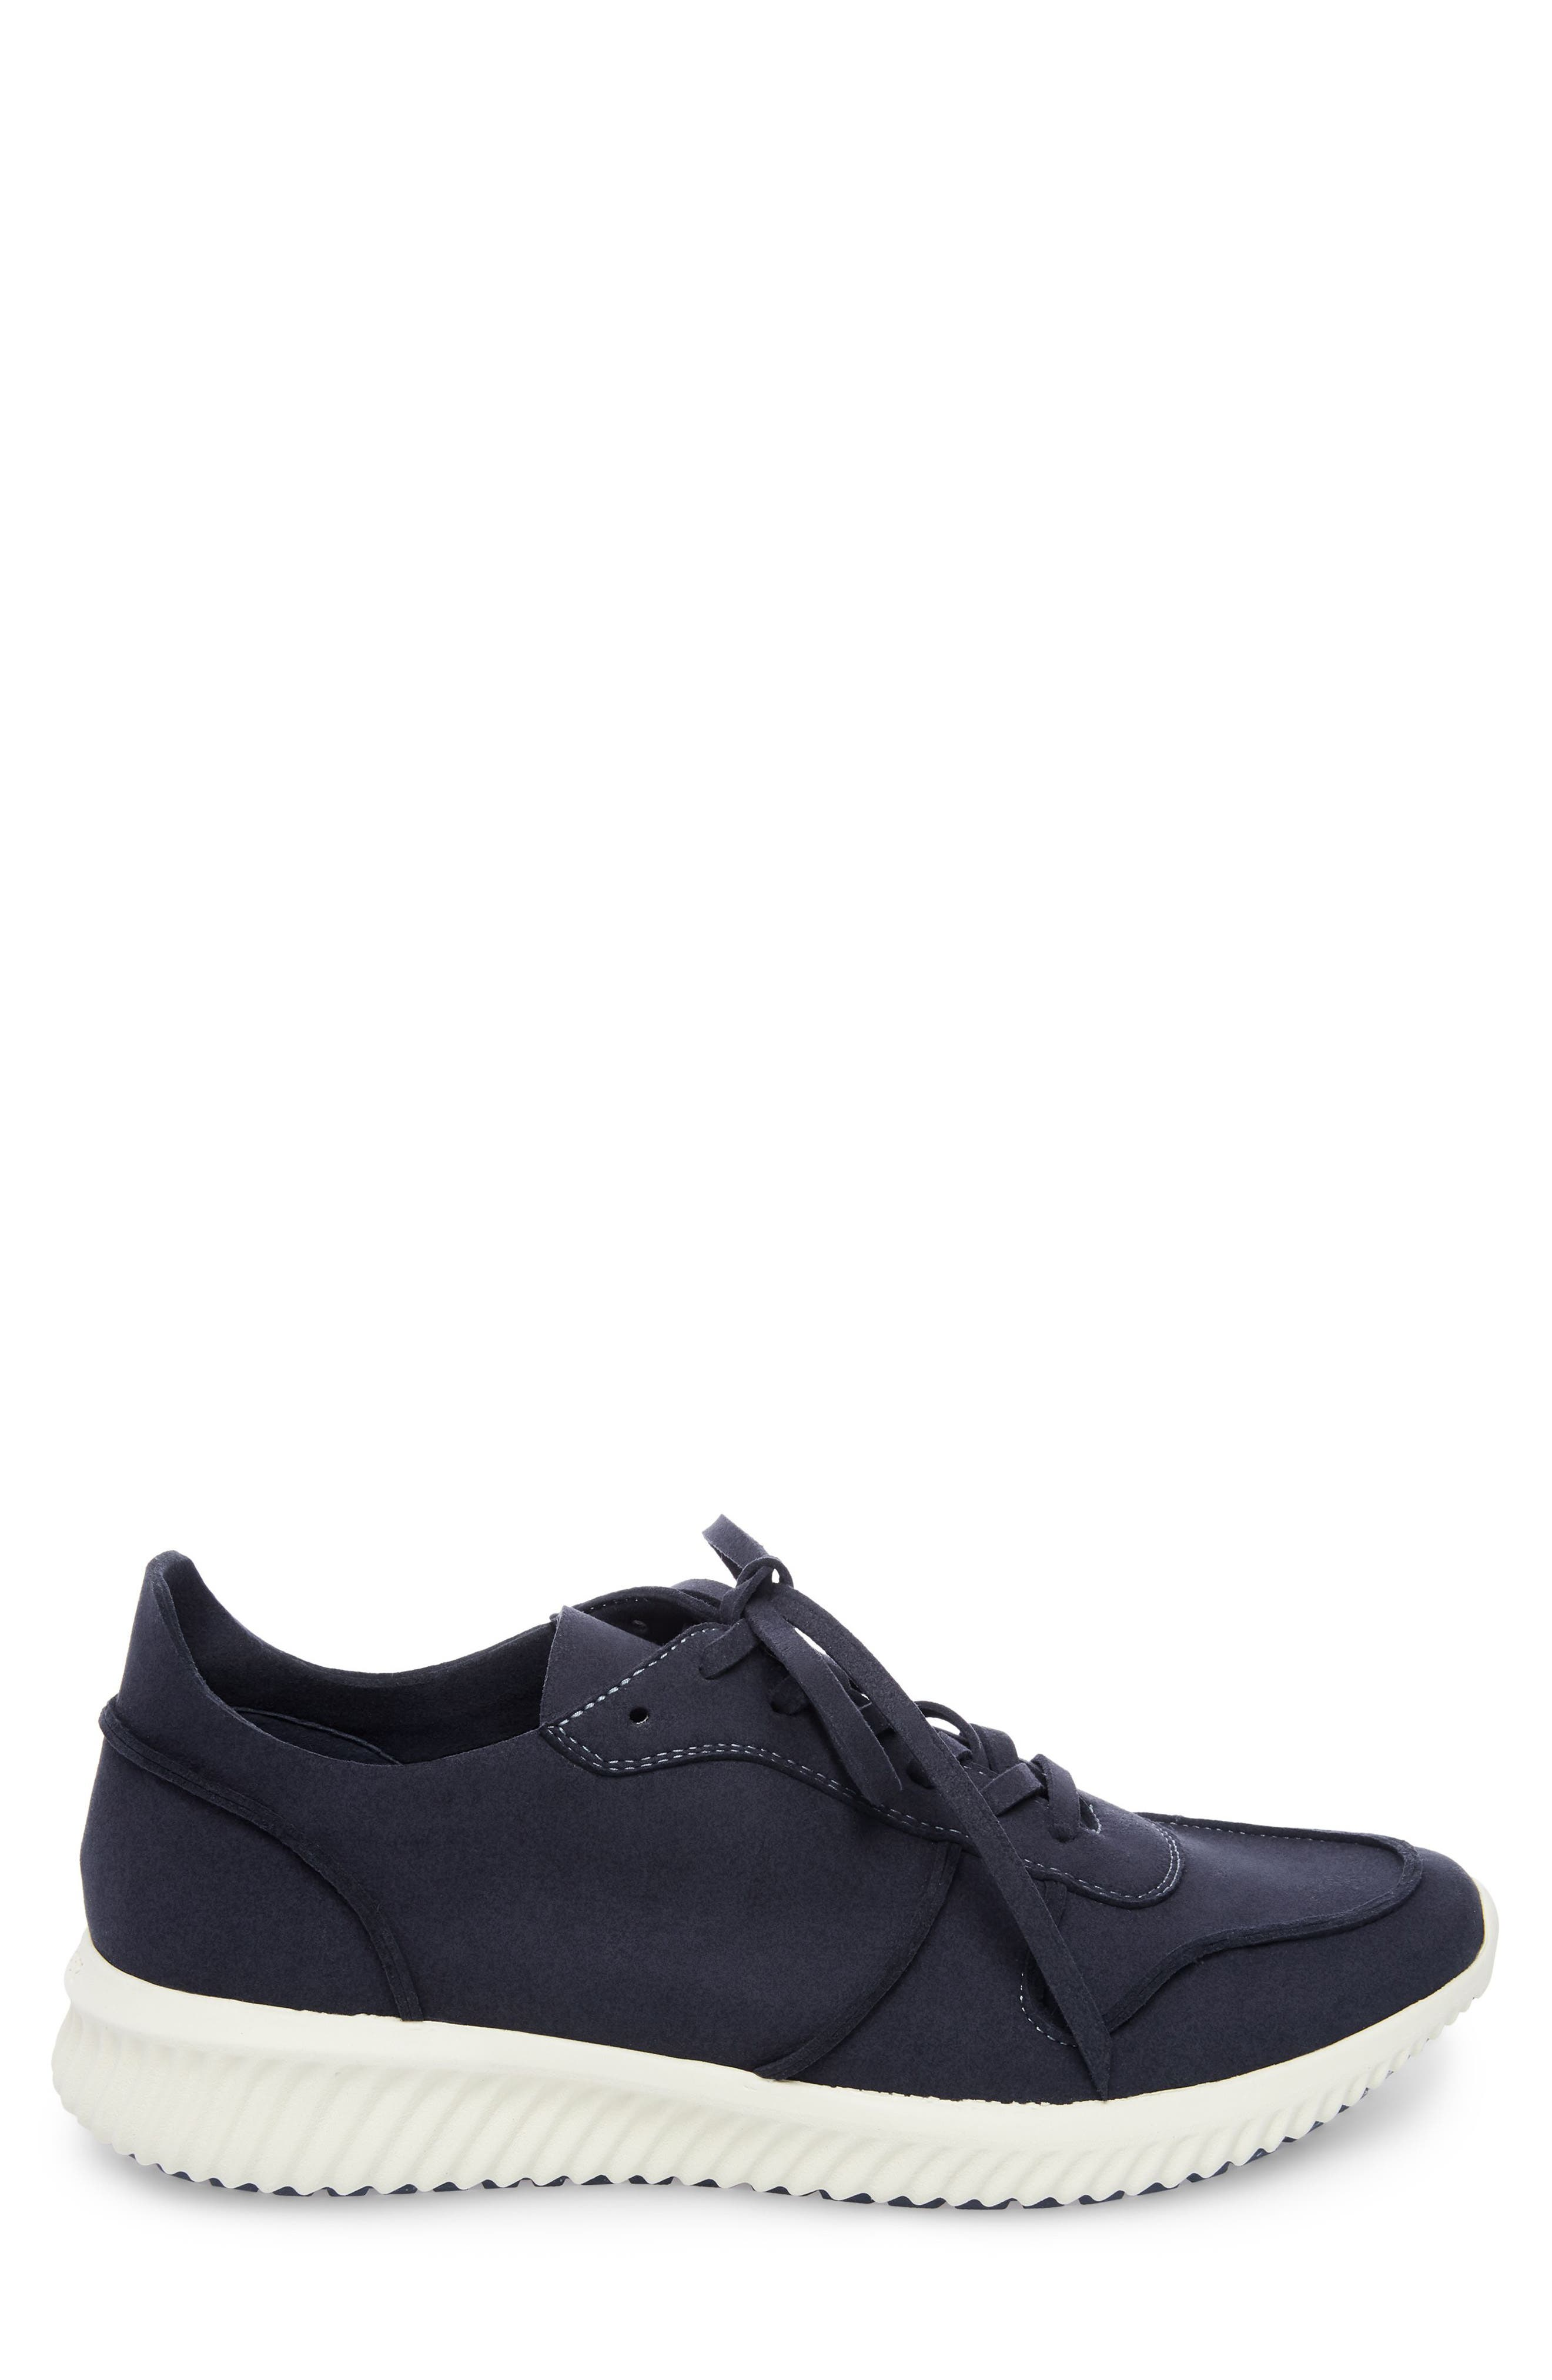 Rolf Low Top Sneaker,                             Alternate thumbnail 3, color,                             Navy Leather